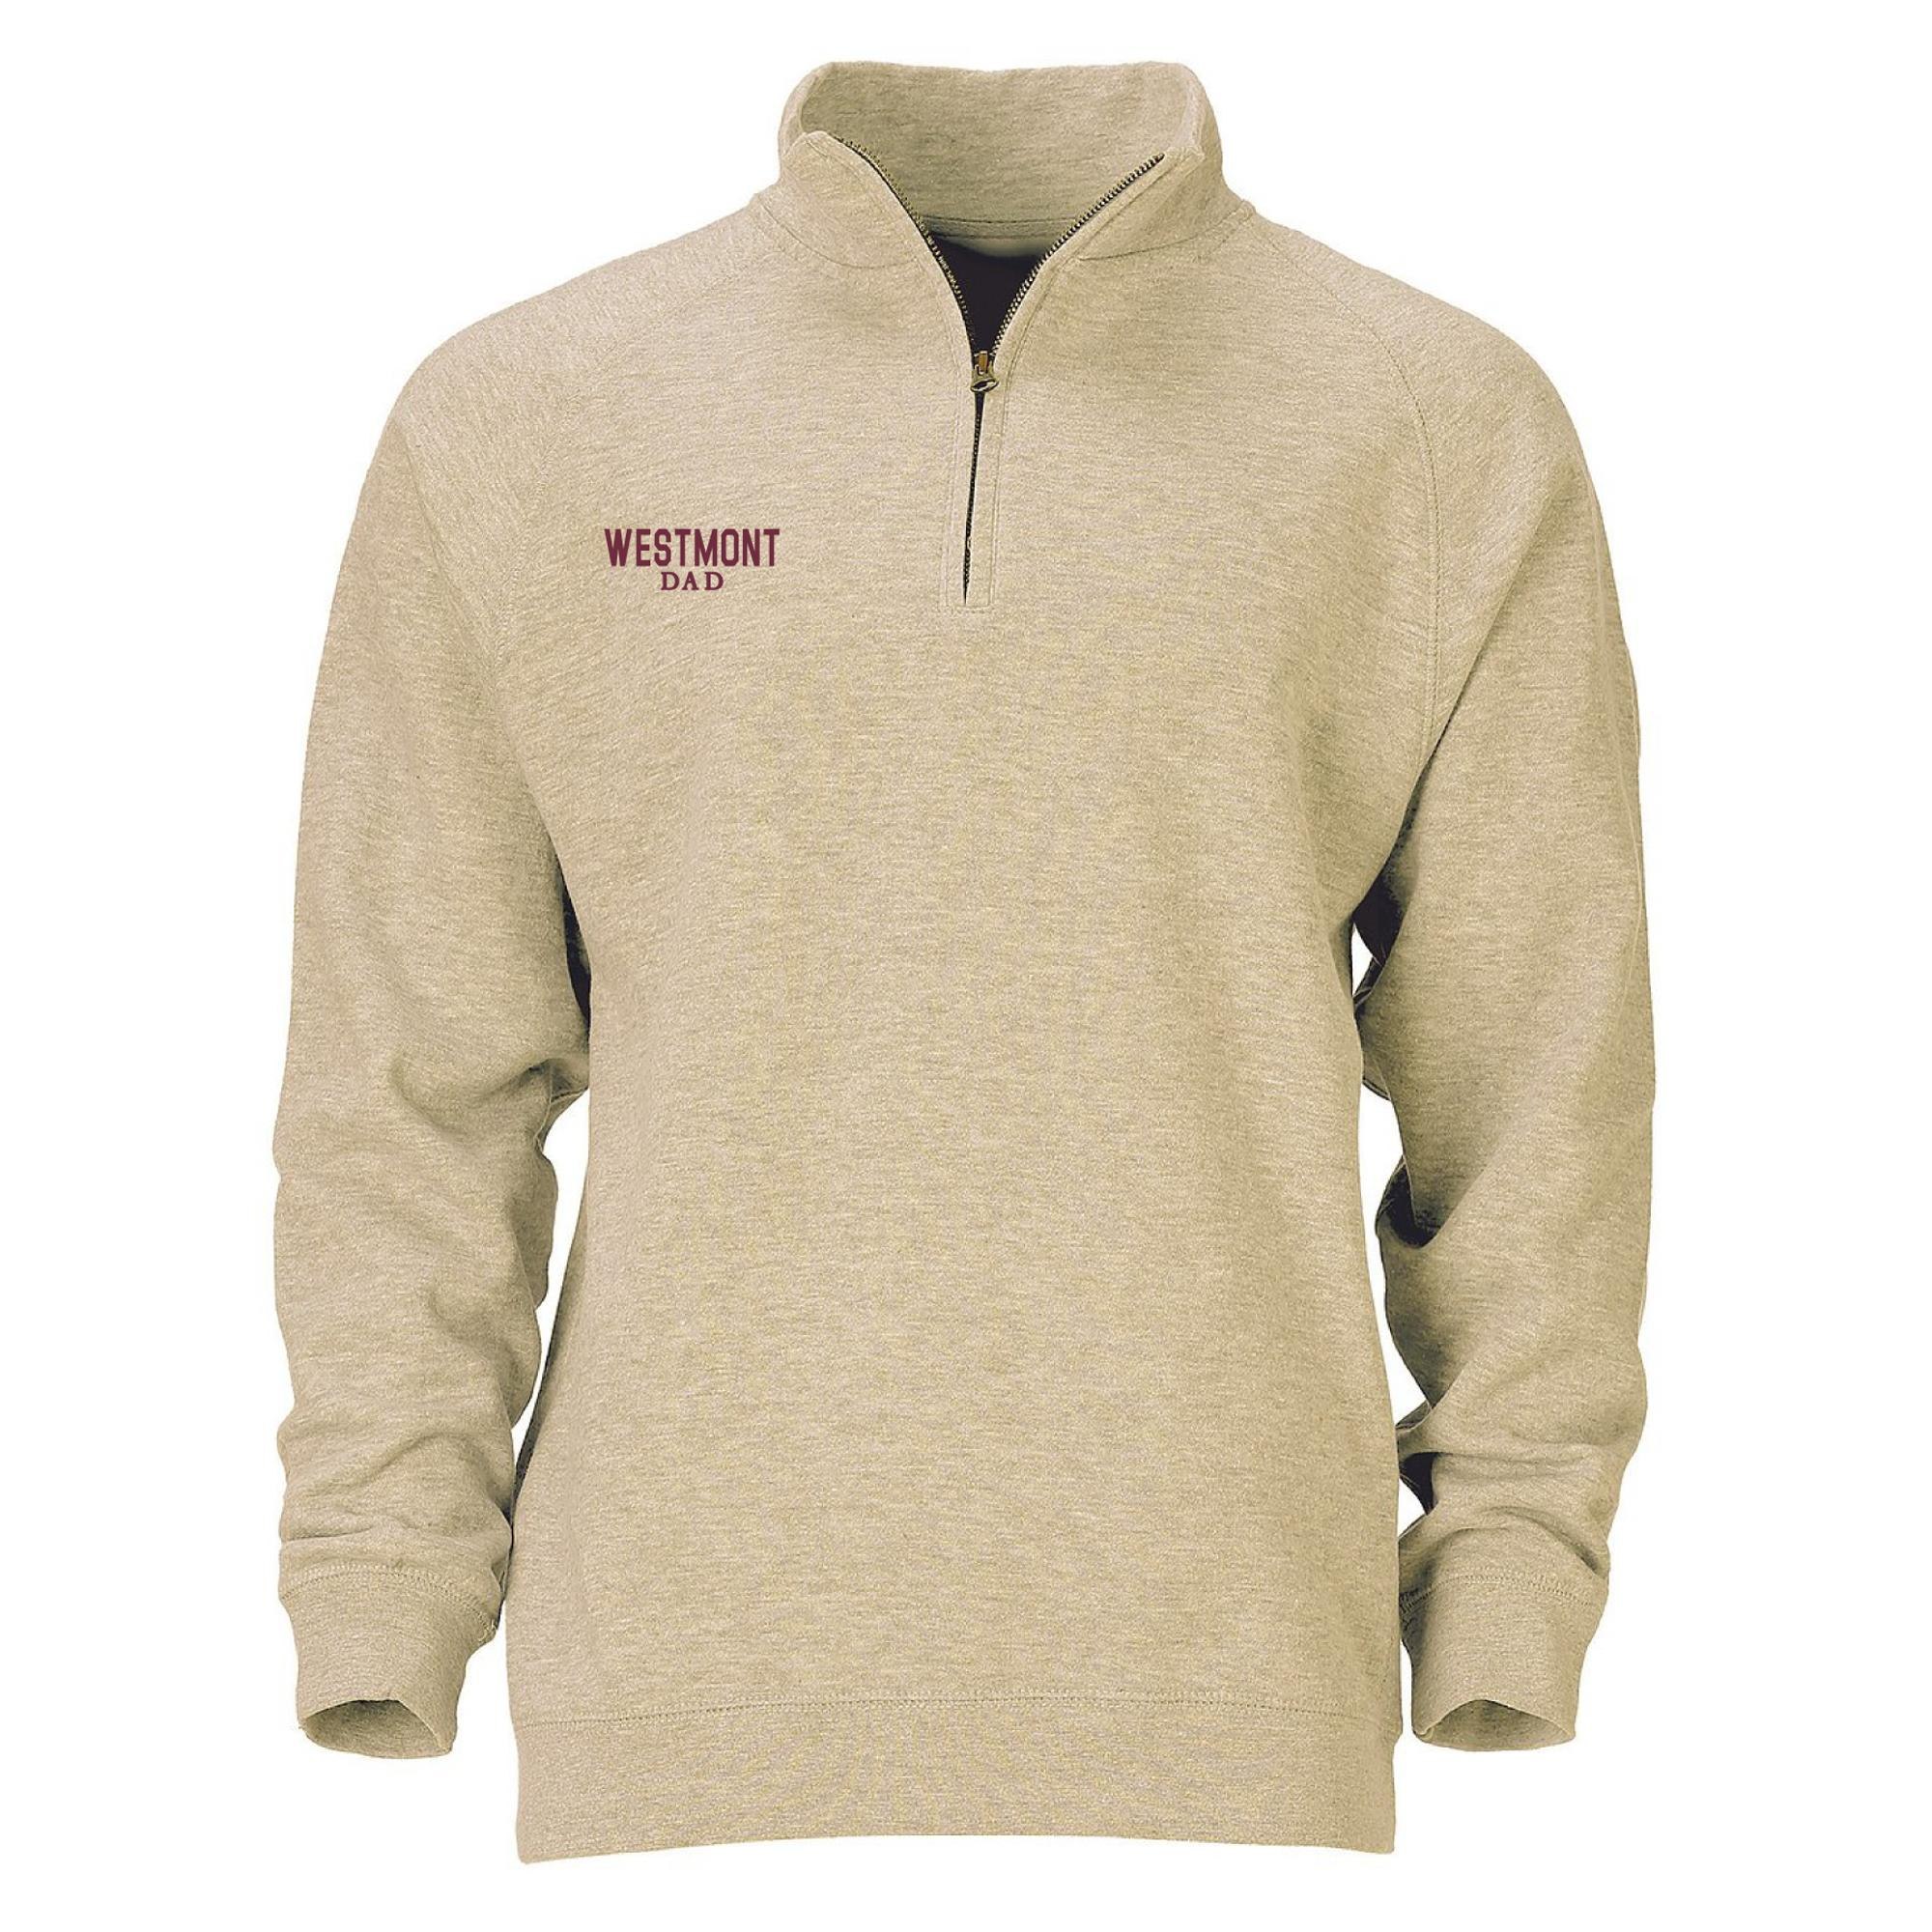 image of: Ouray Westmont Dad Benchmark 1/4 Zip